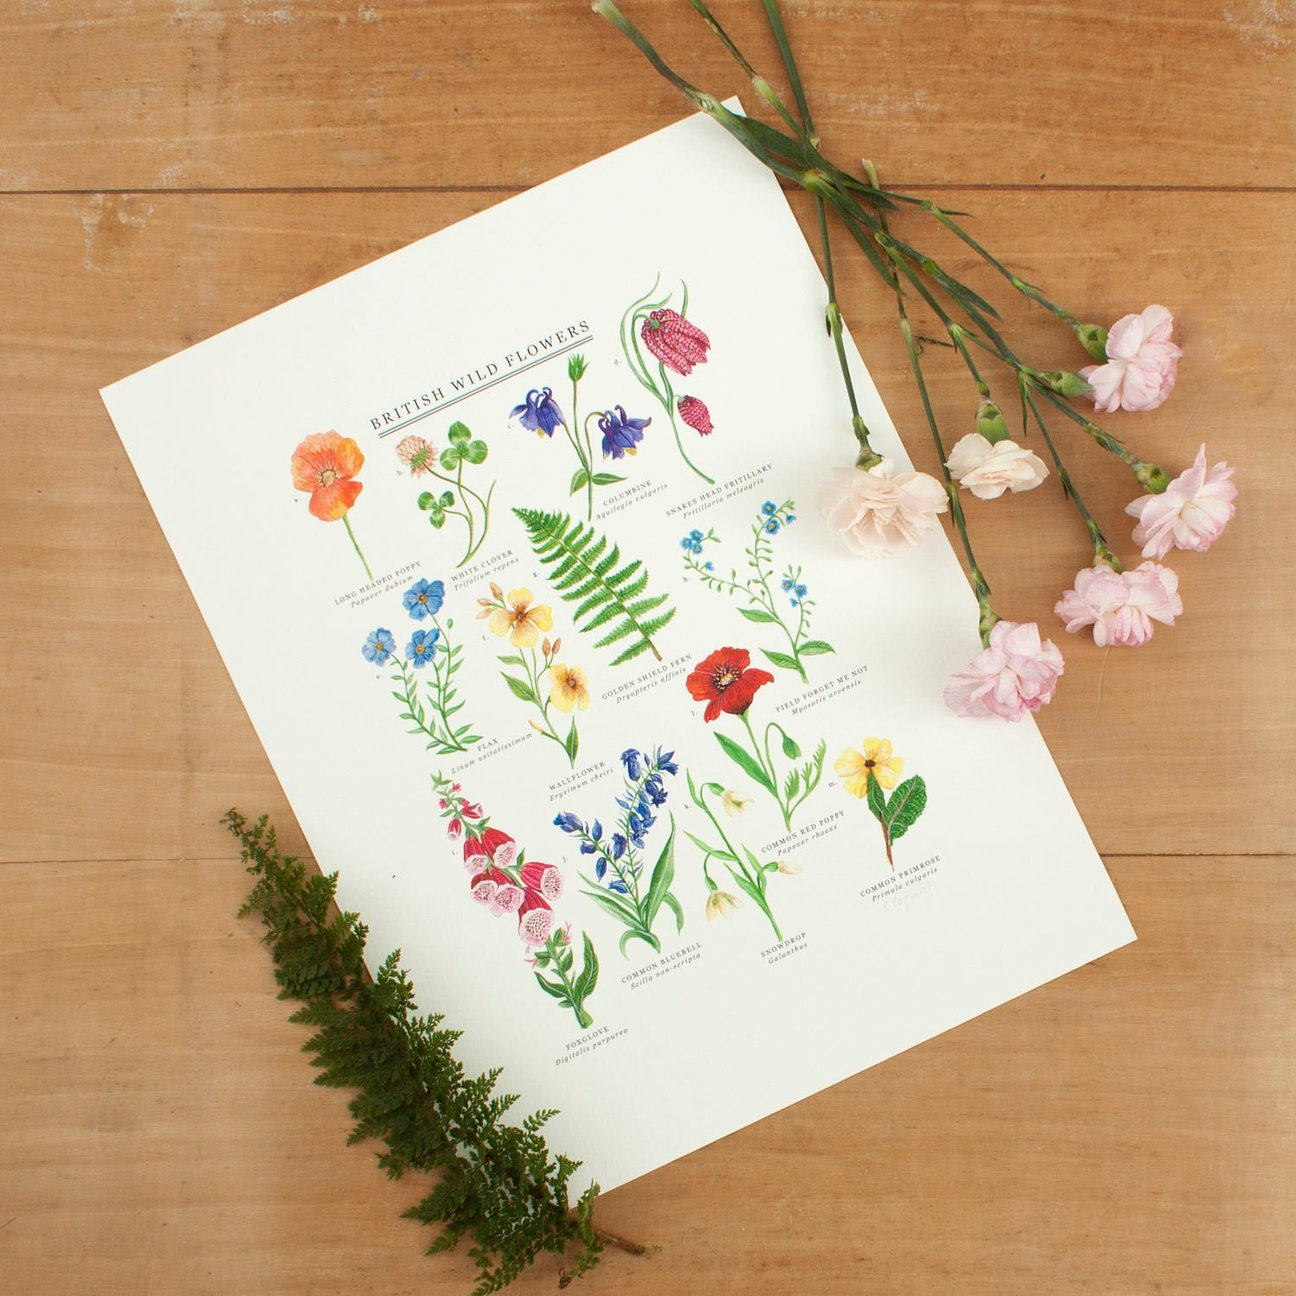 Nature Inspired Giclee Prints - Various Designs